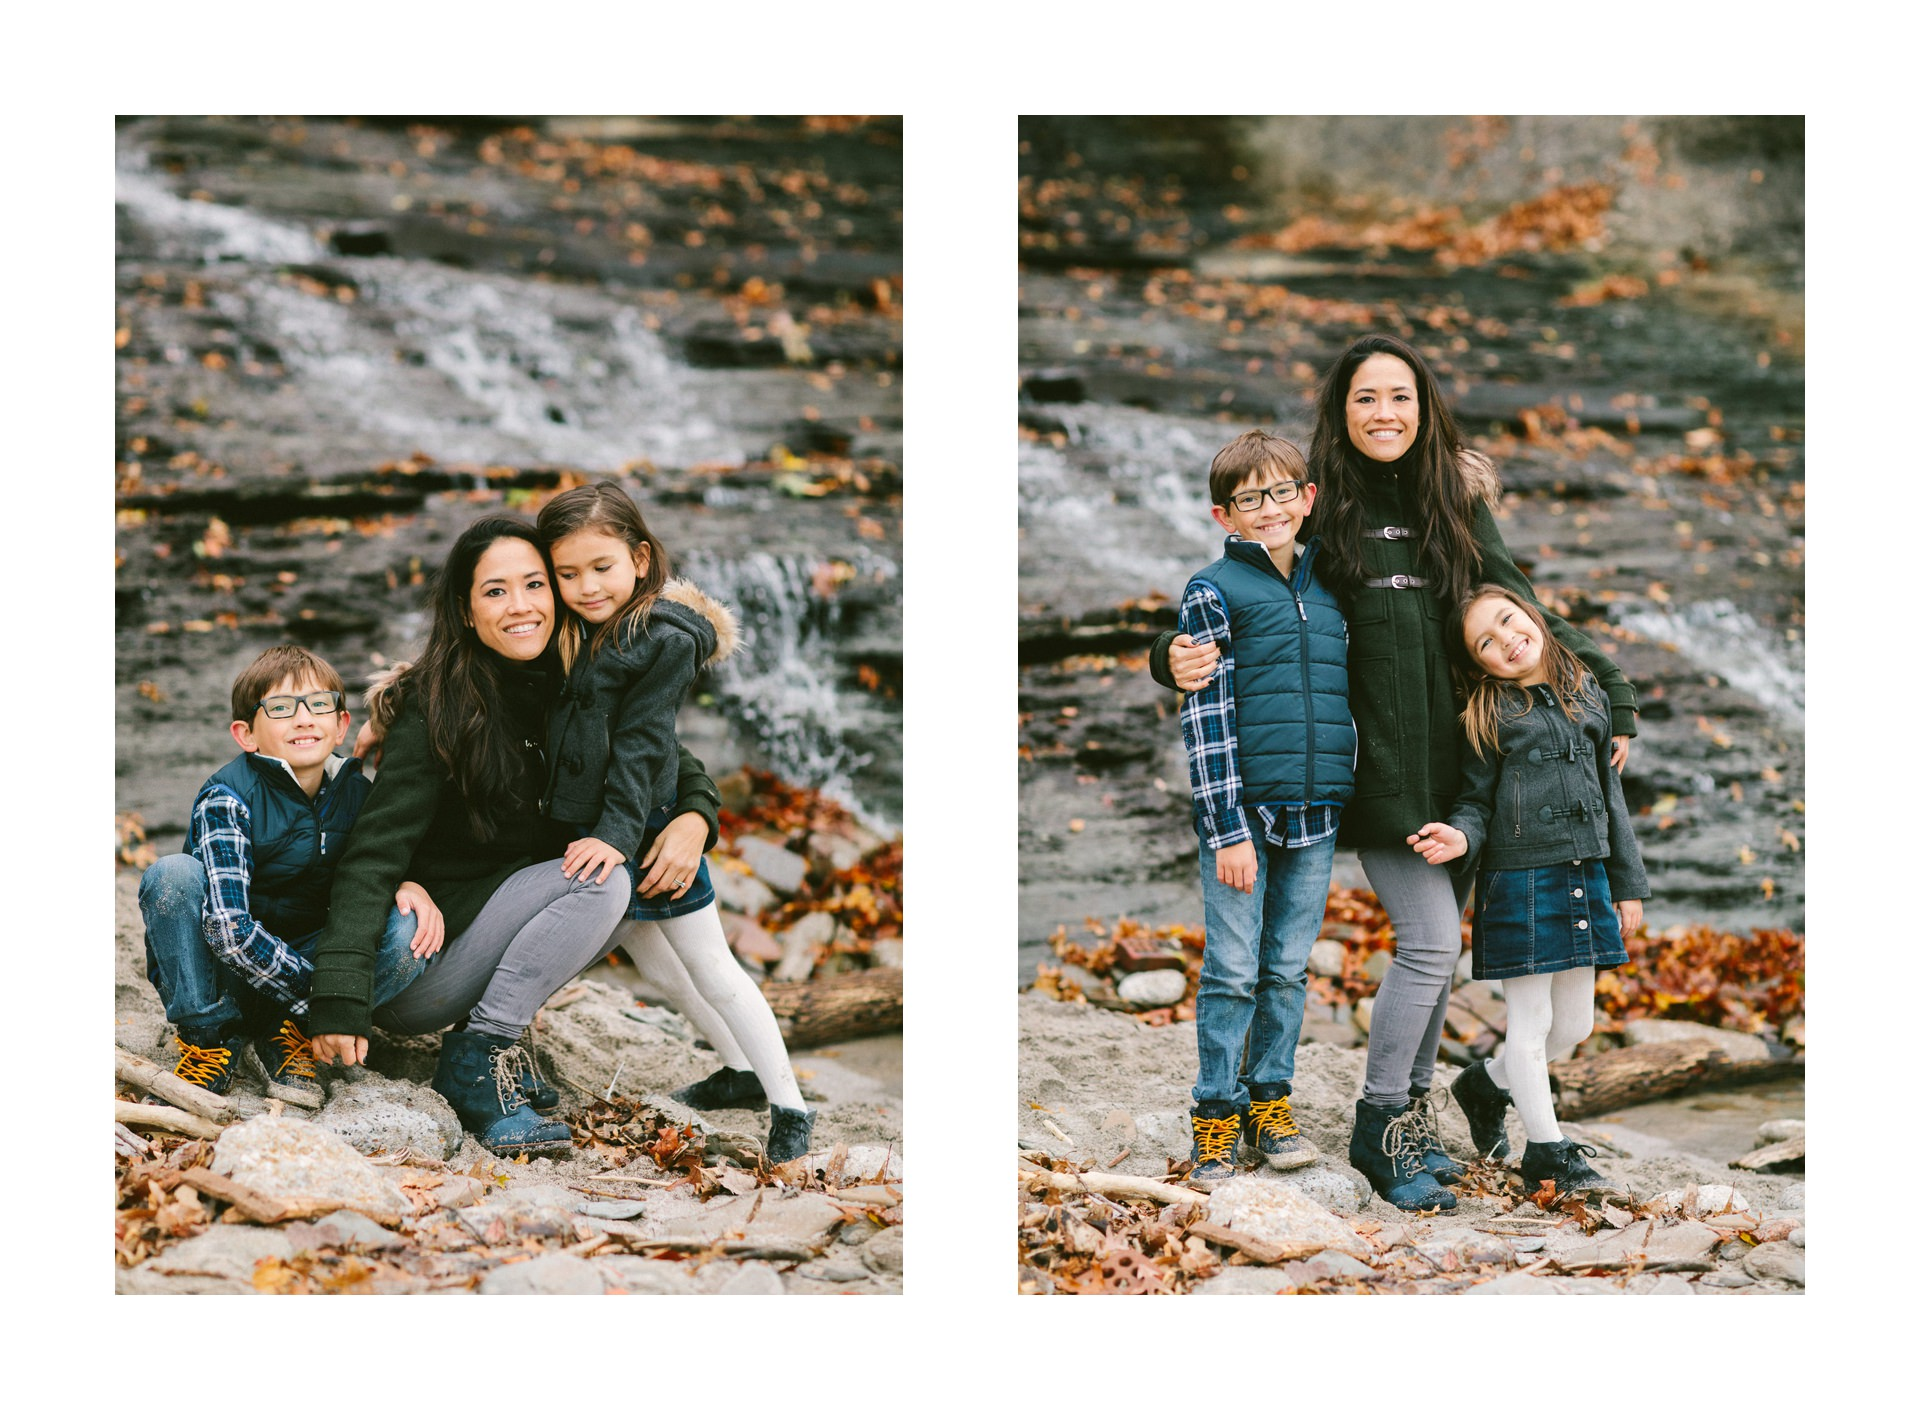 Westlake Ohio Family Portrait Photographer The Roths 67.jpg